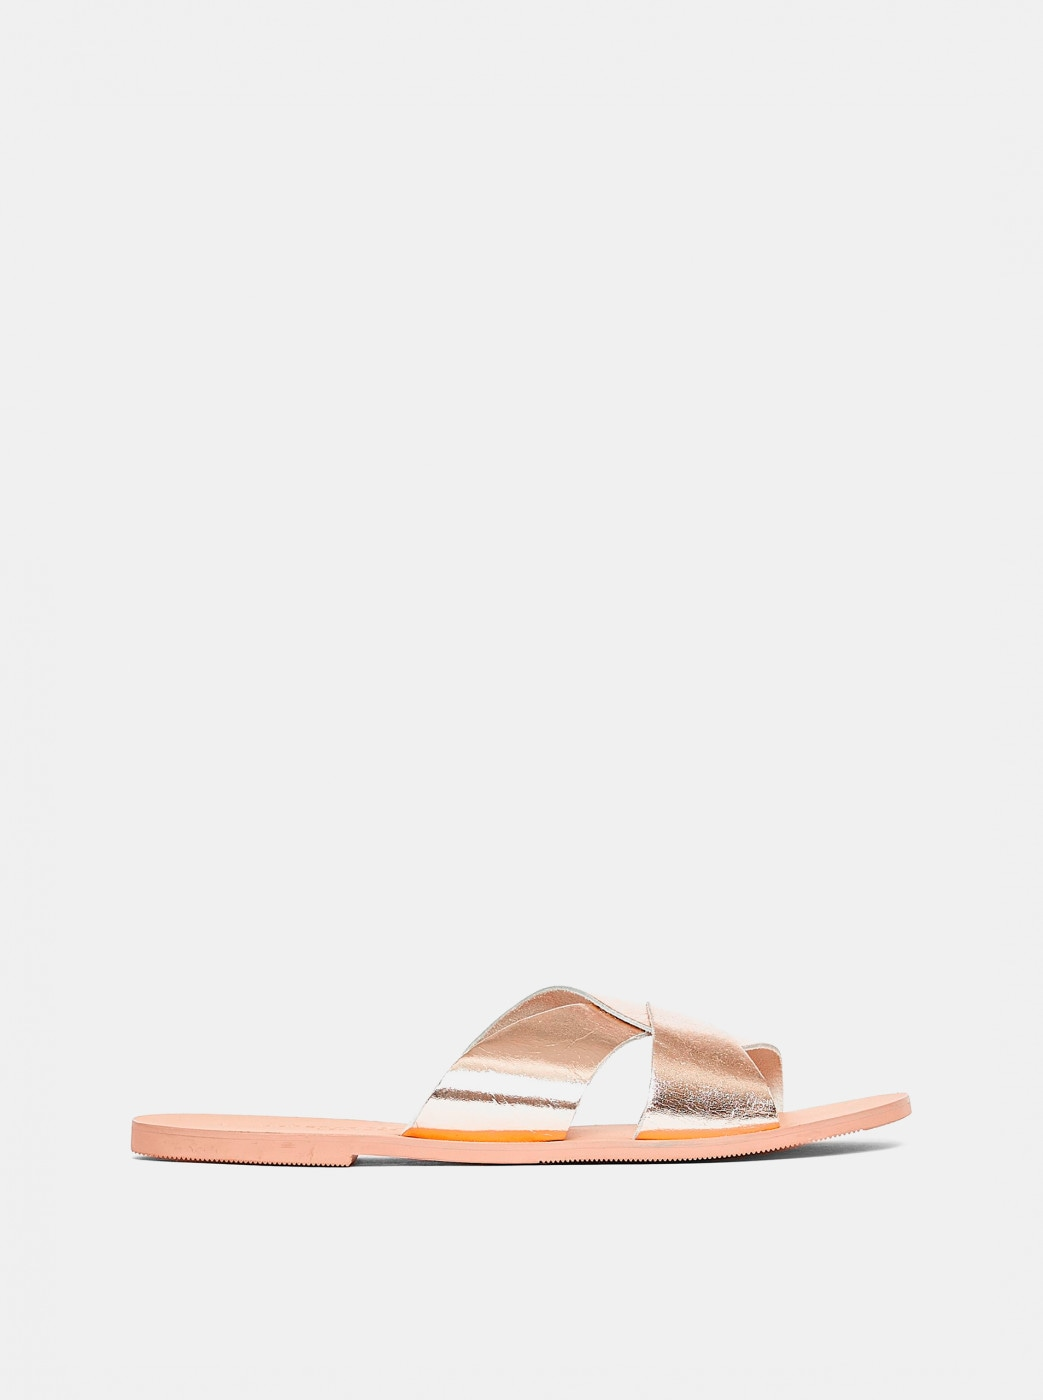 Dorothy Perkins Gold Leather Slippers